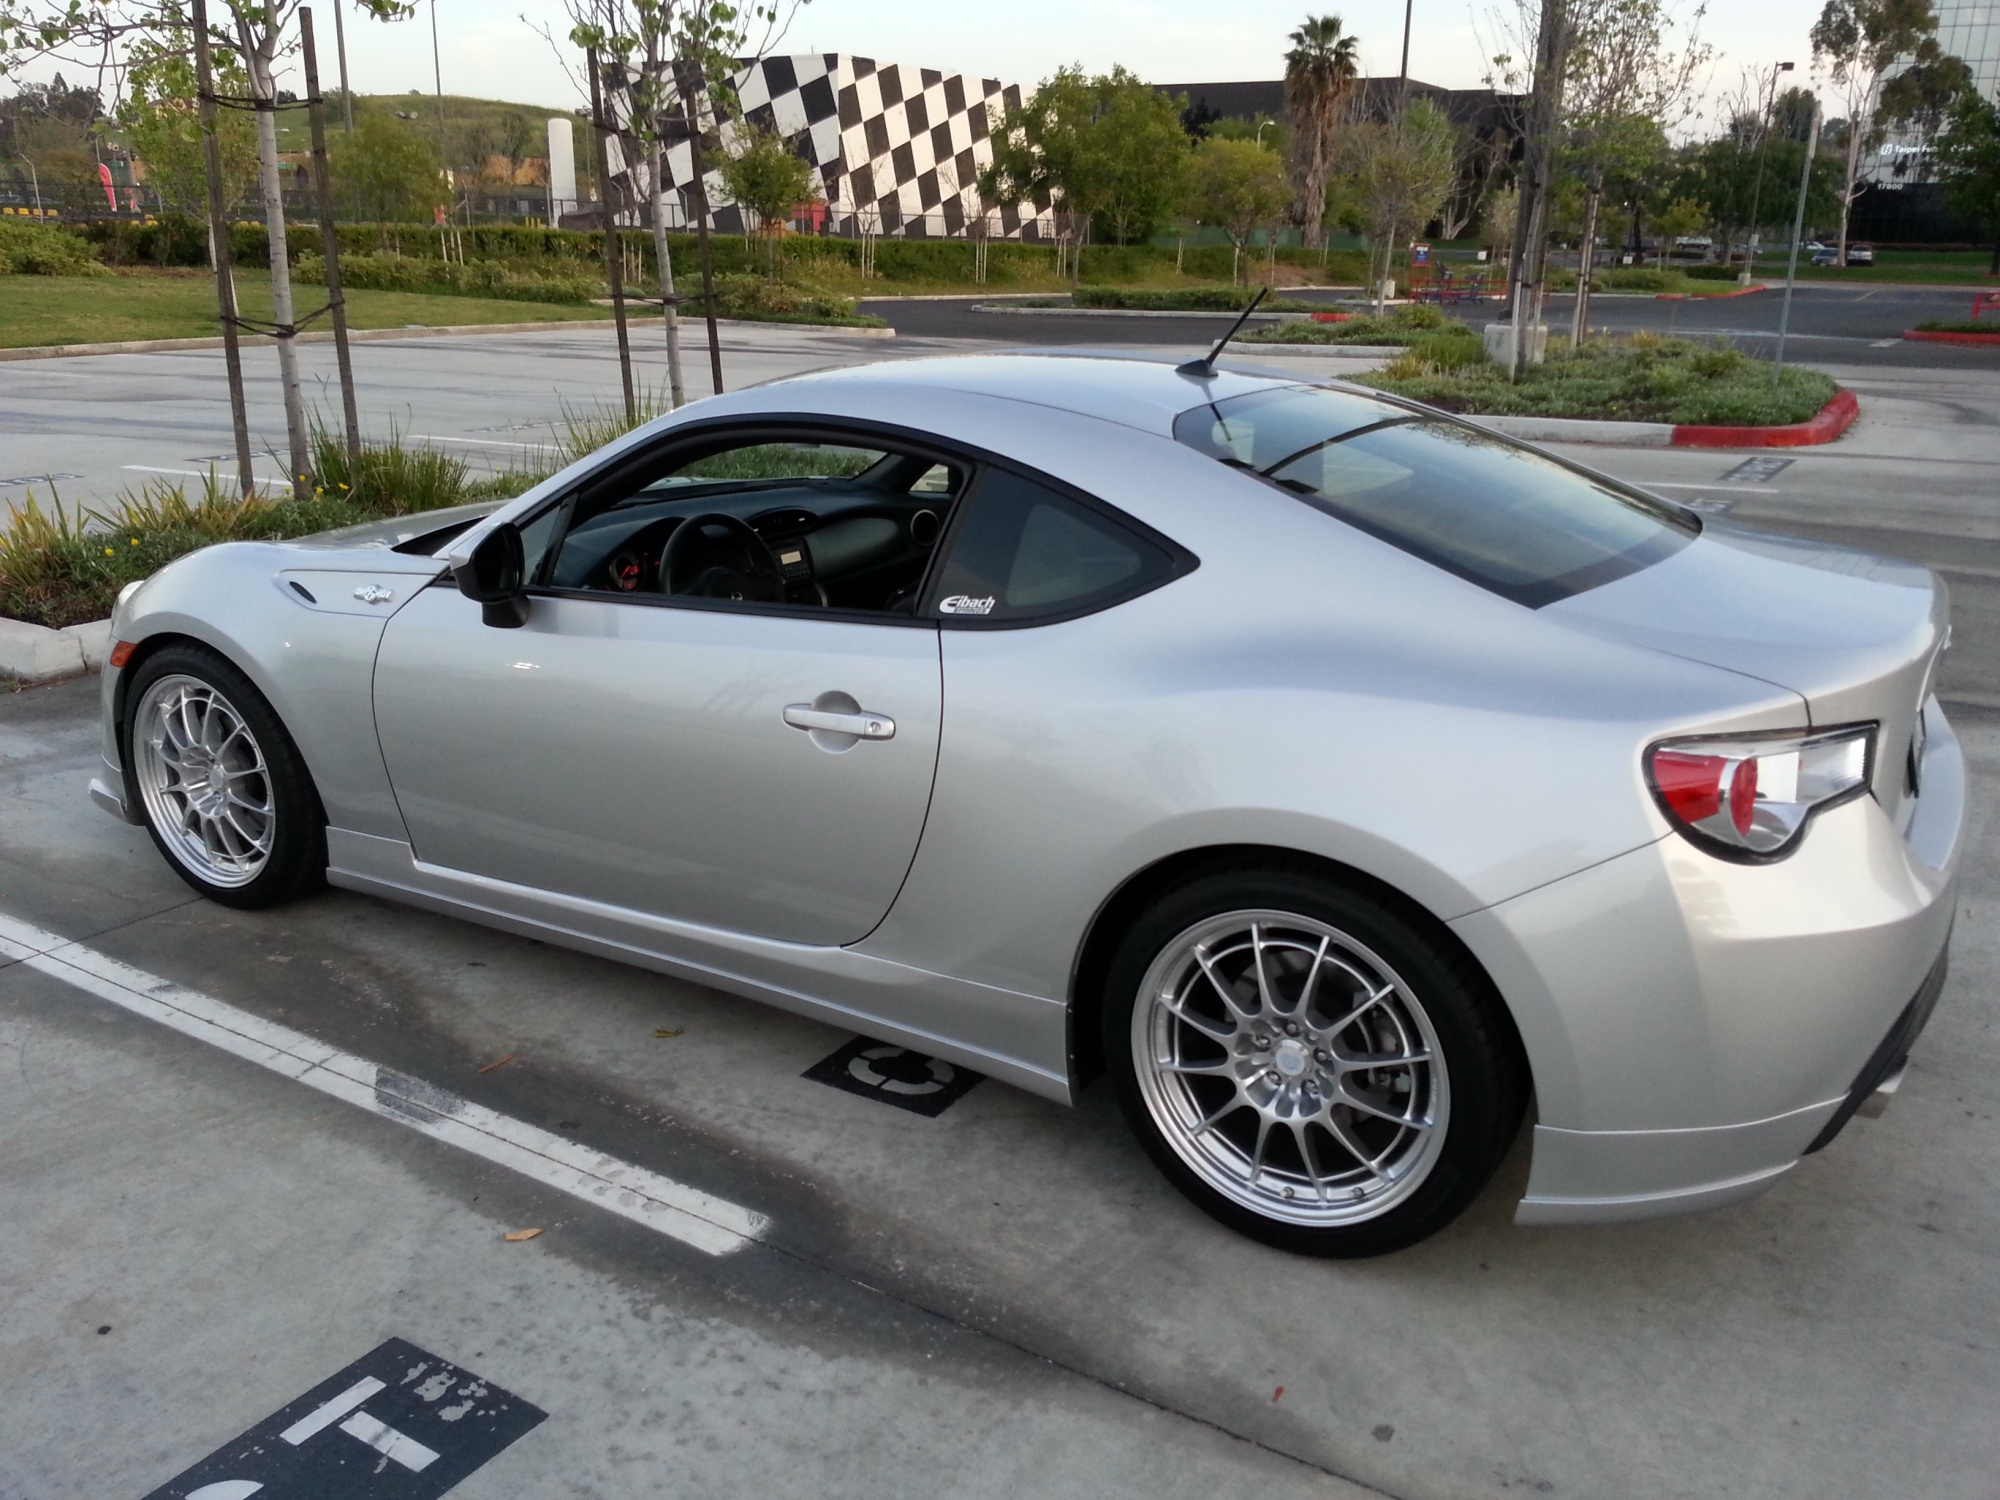 scion fr s custom wheels enkei nt03 m 18x8 0 et 35 tire size 225 40 r18 x et. Black Bedroom Furniture Sets. Home Design Ideas